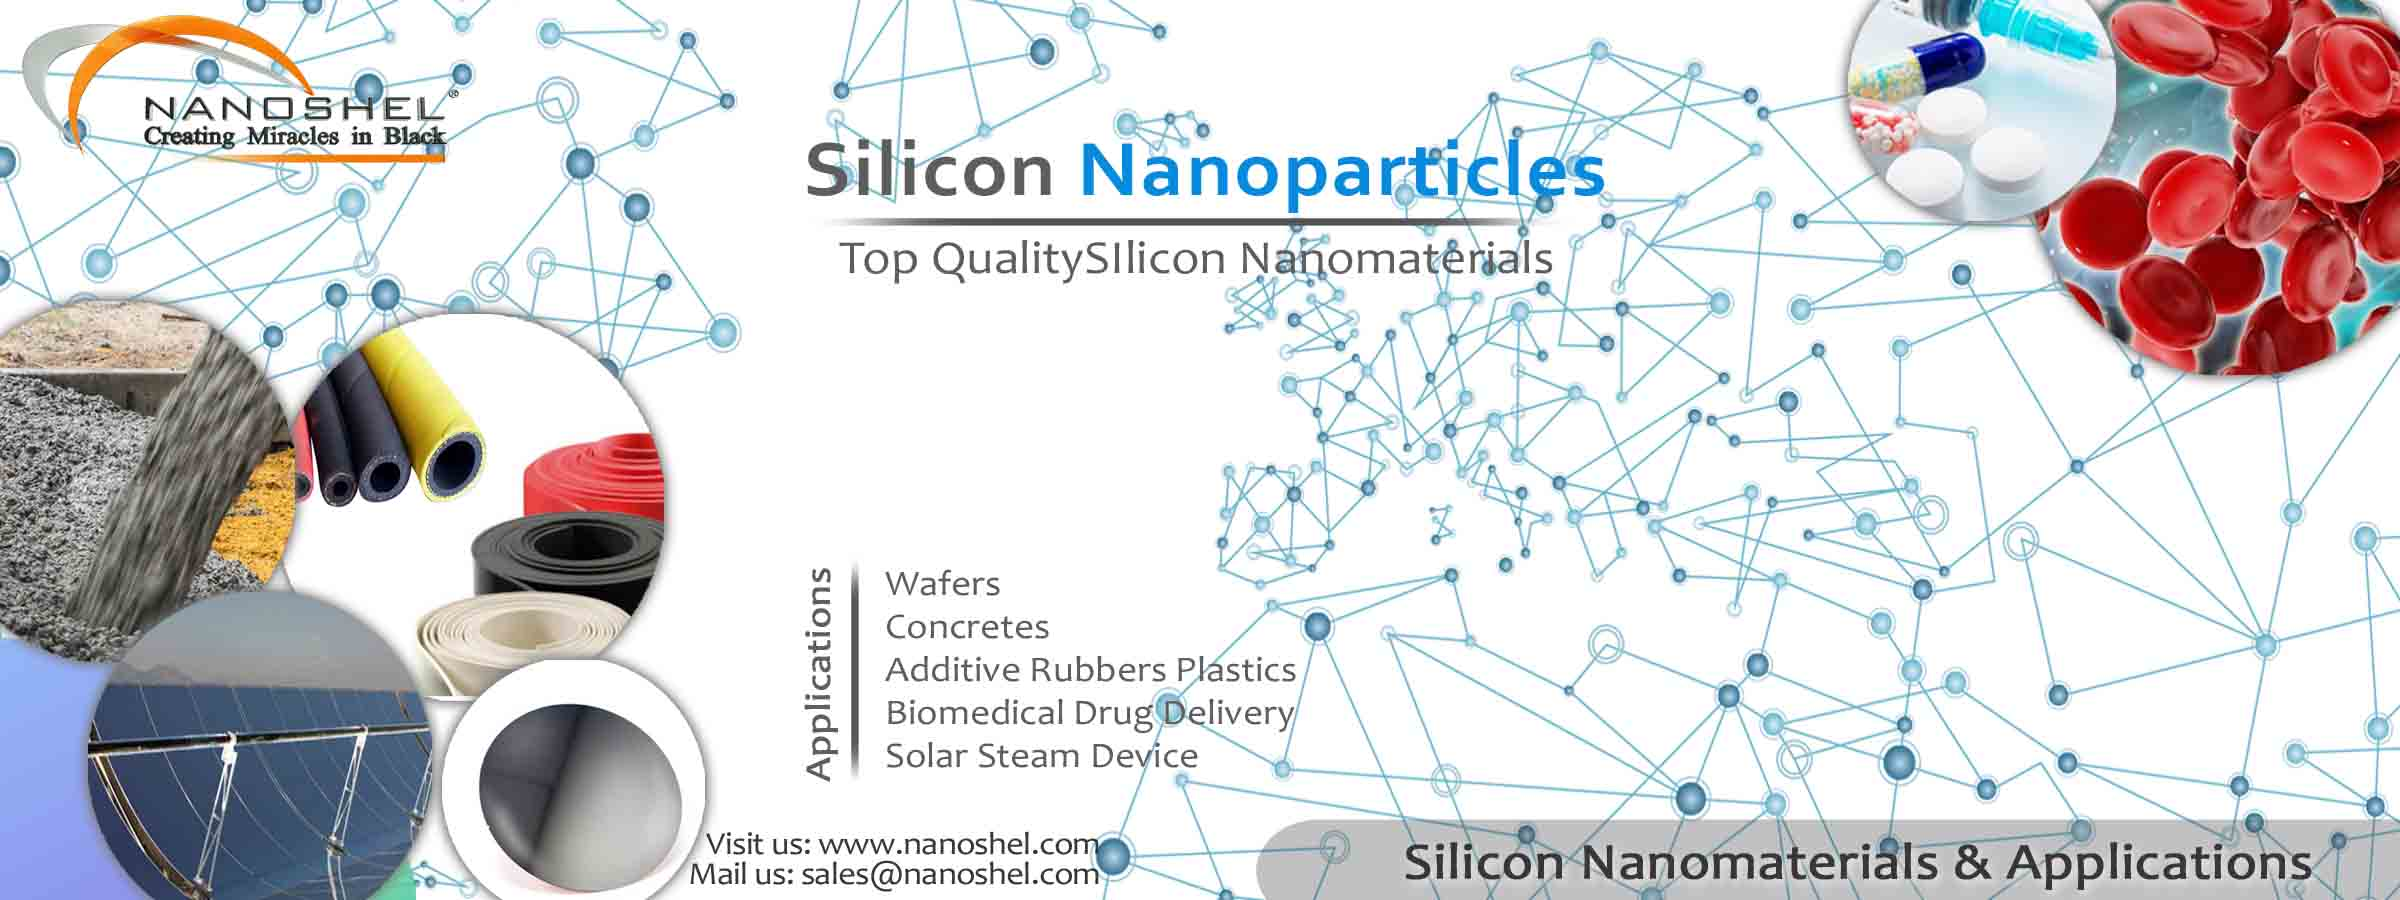 Silicon Nanoparticle